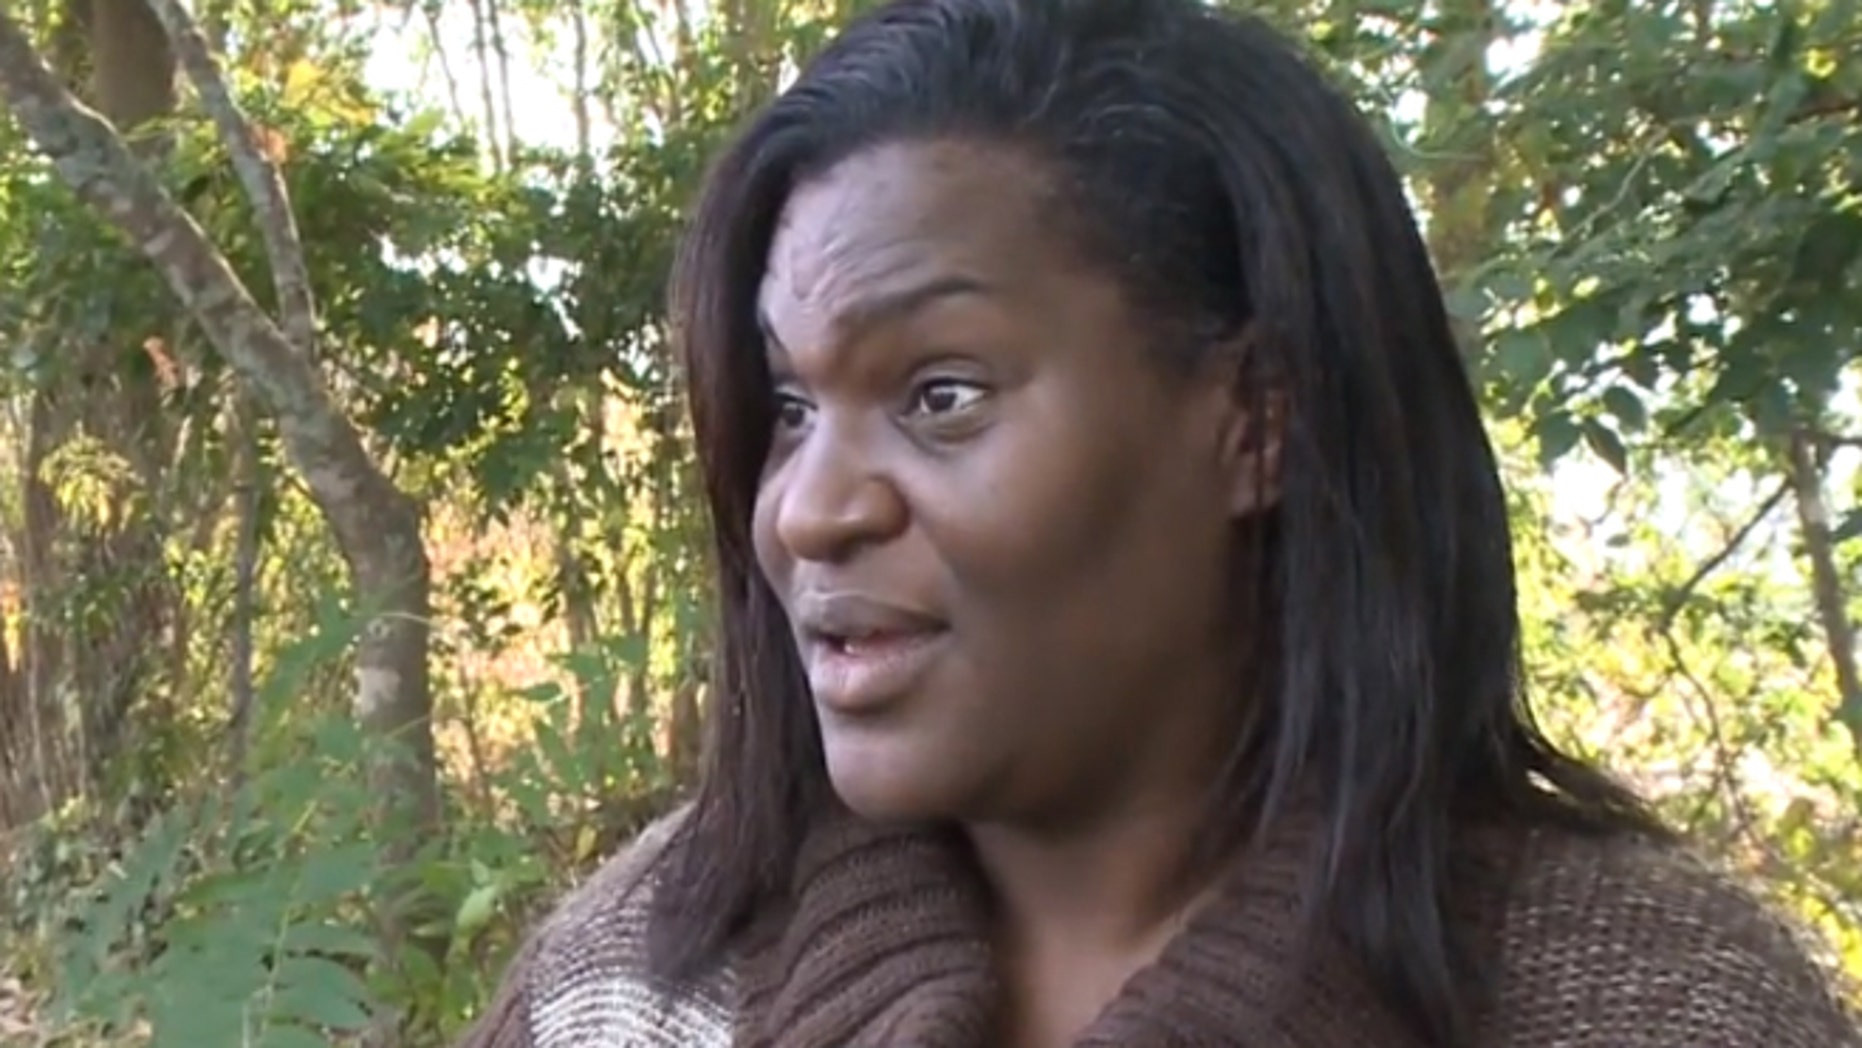 Tanya Mount says she was approached at the girl's school by a police officer from the Richmond County Board of Education who warned her that she was going to get a criminal trespass warning.